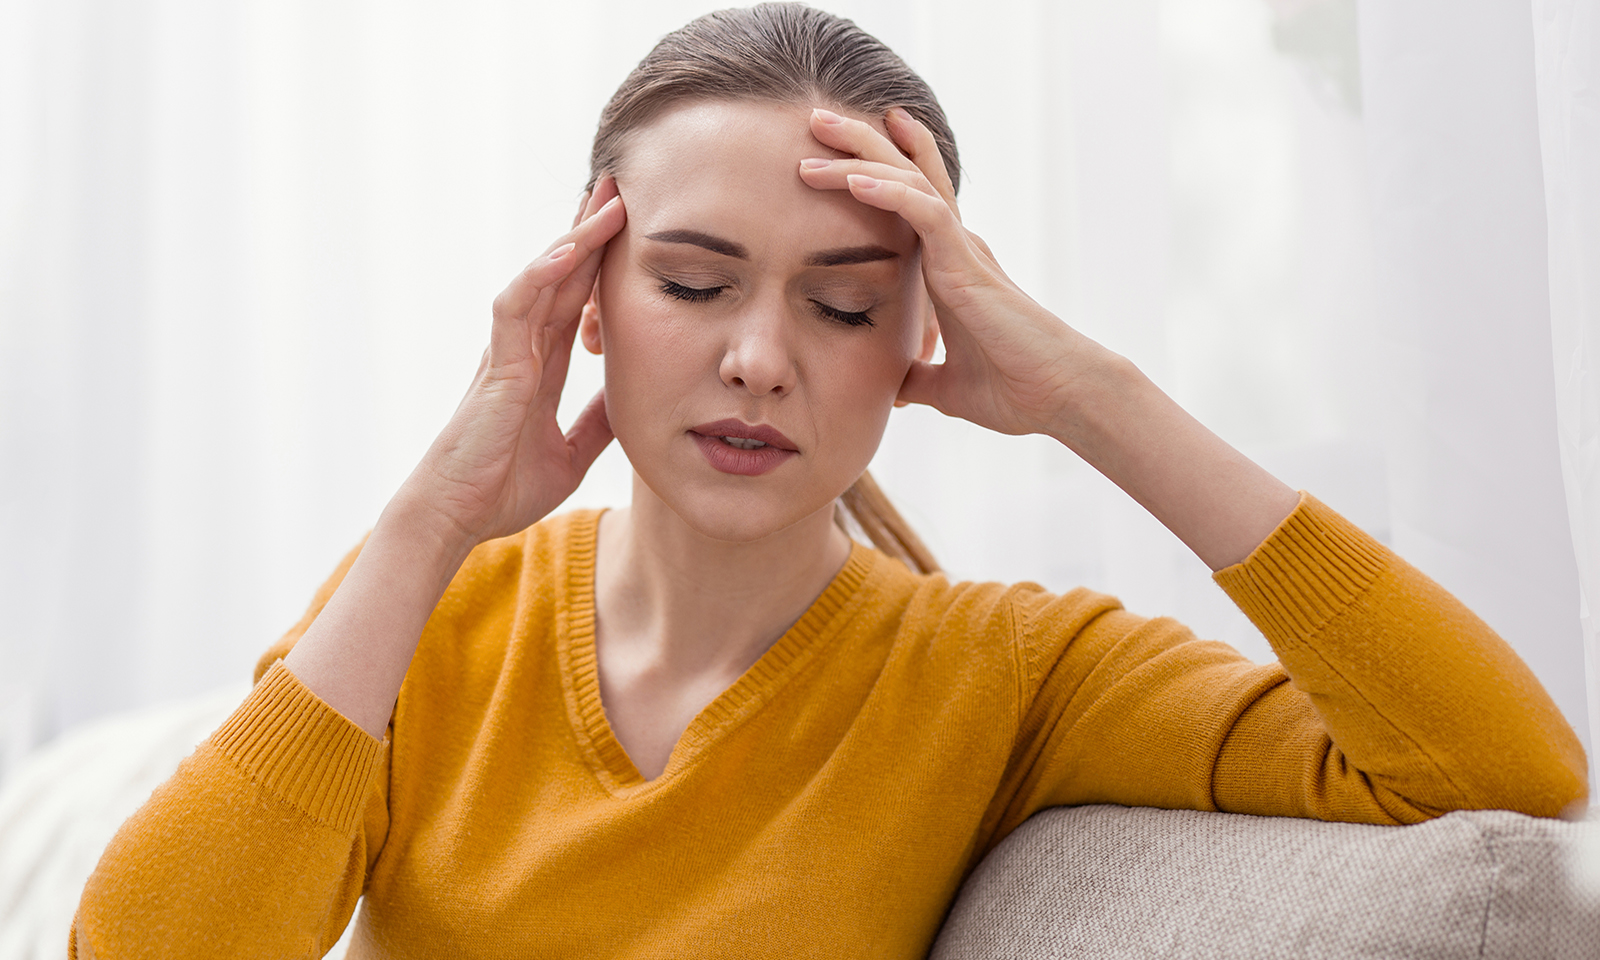 rise-of-depression-due-to-social-media-main-image-woman-in-pain-headache